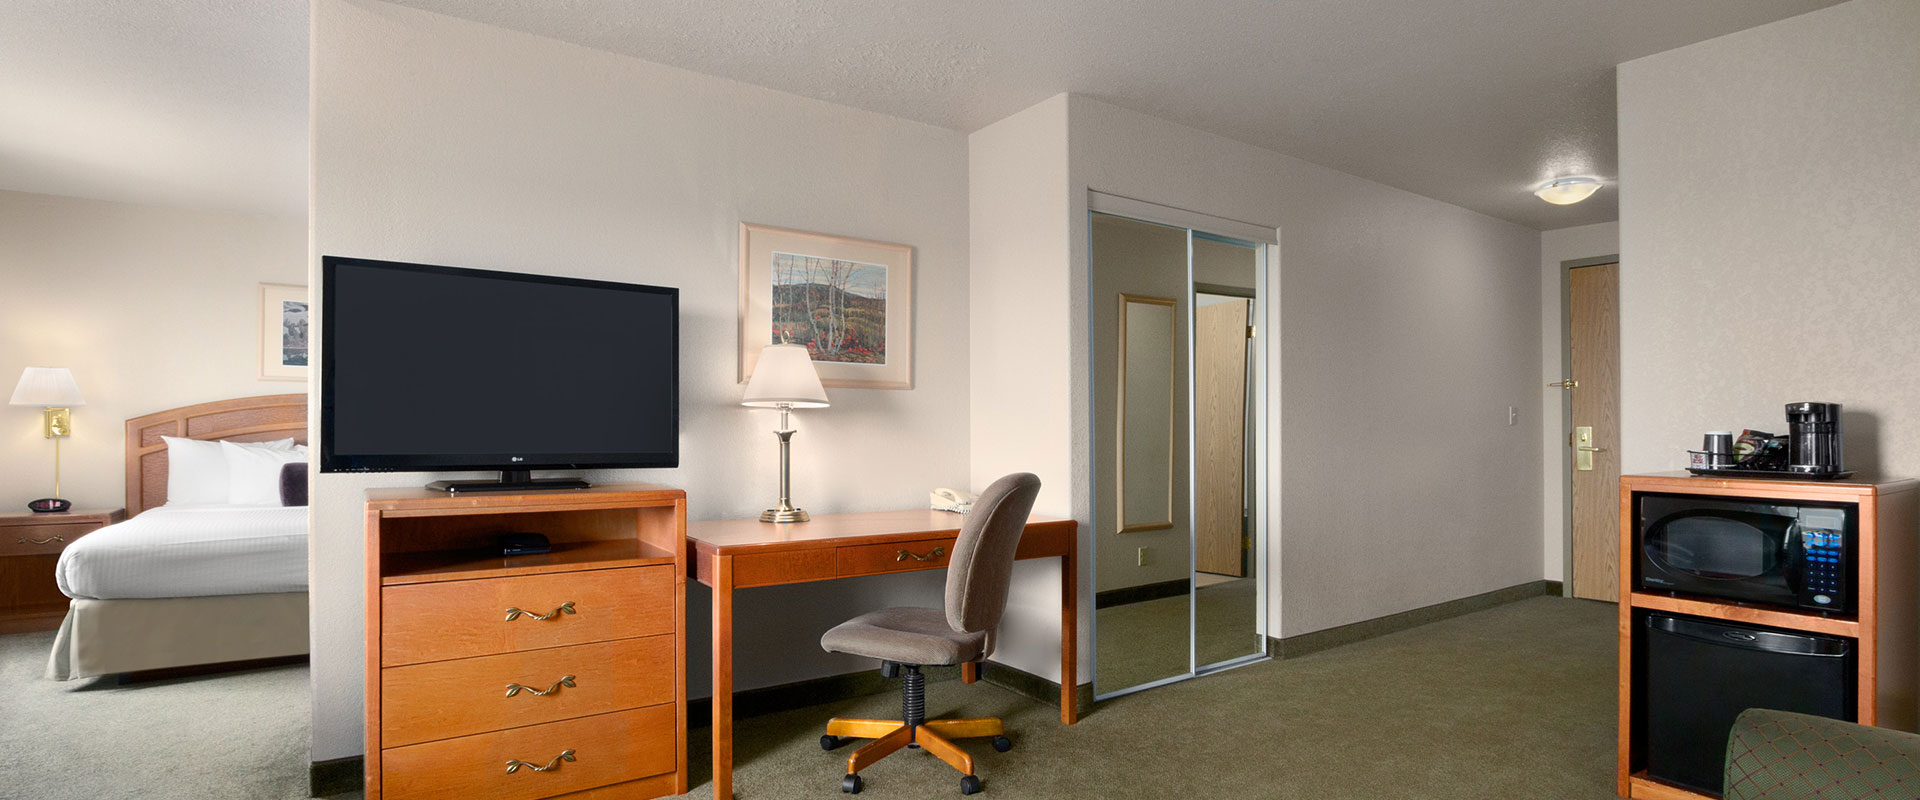 Large view of a suite at Days Inn Red Deer, Alberta with a rectangular work table and chair, a TV perched on a cabinet of drawers and mirrored closet.